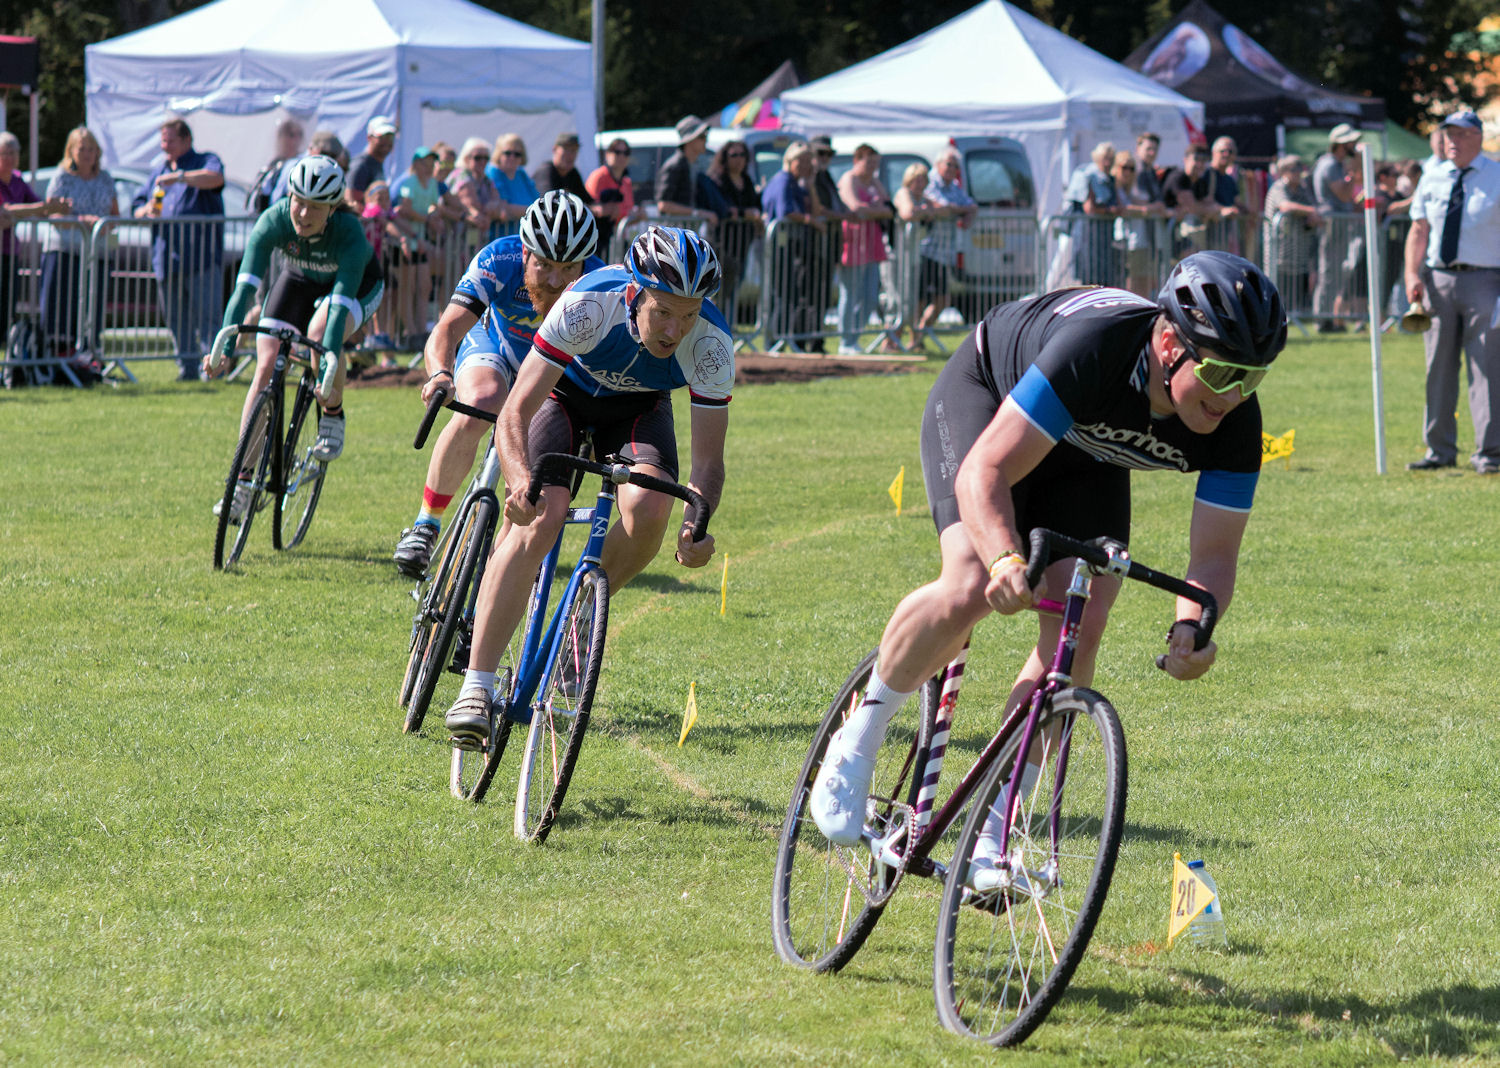 Highland Games Image 30